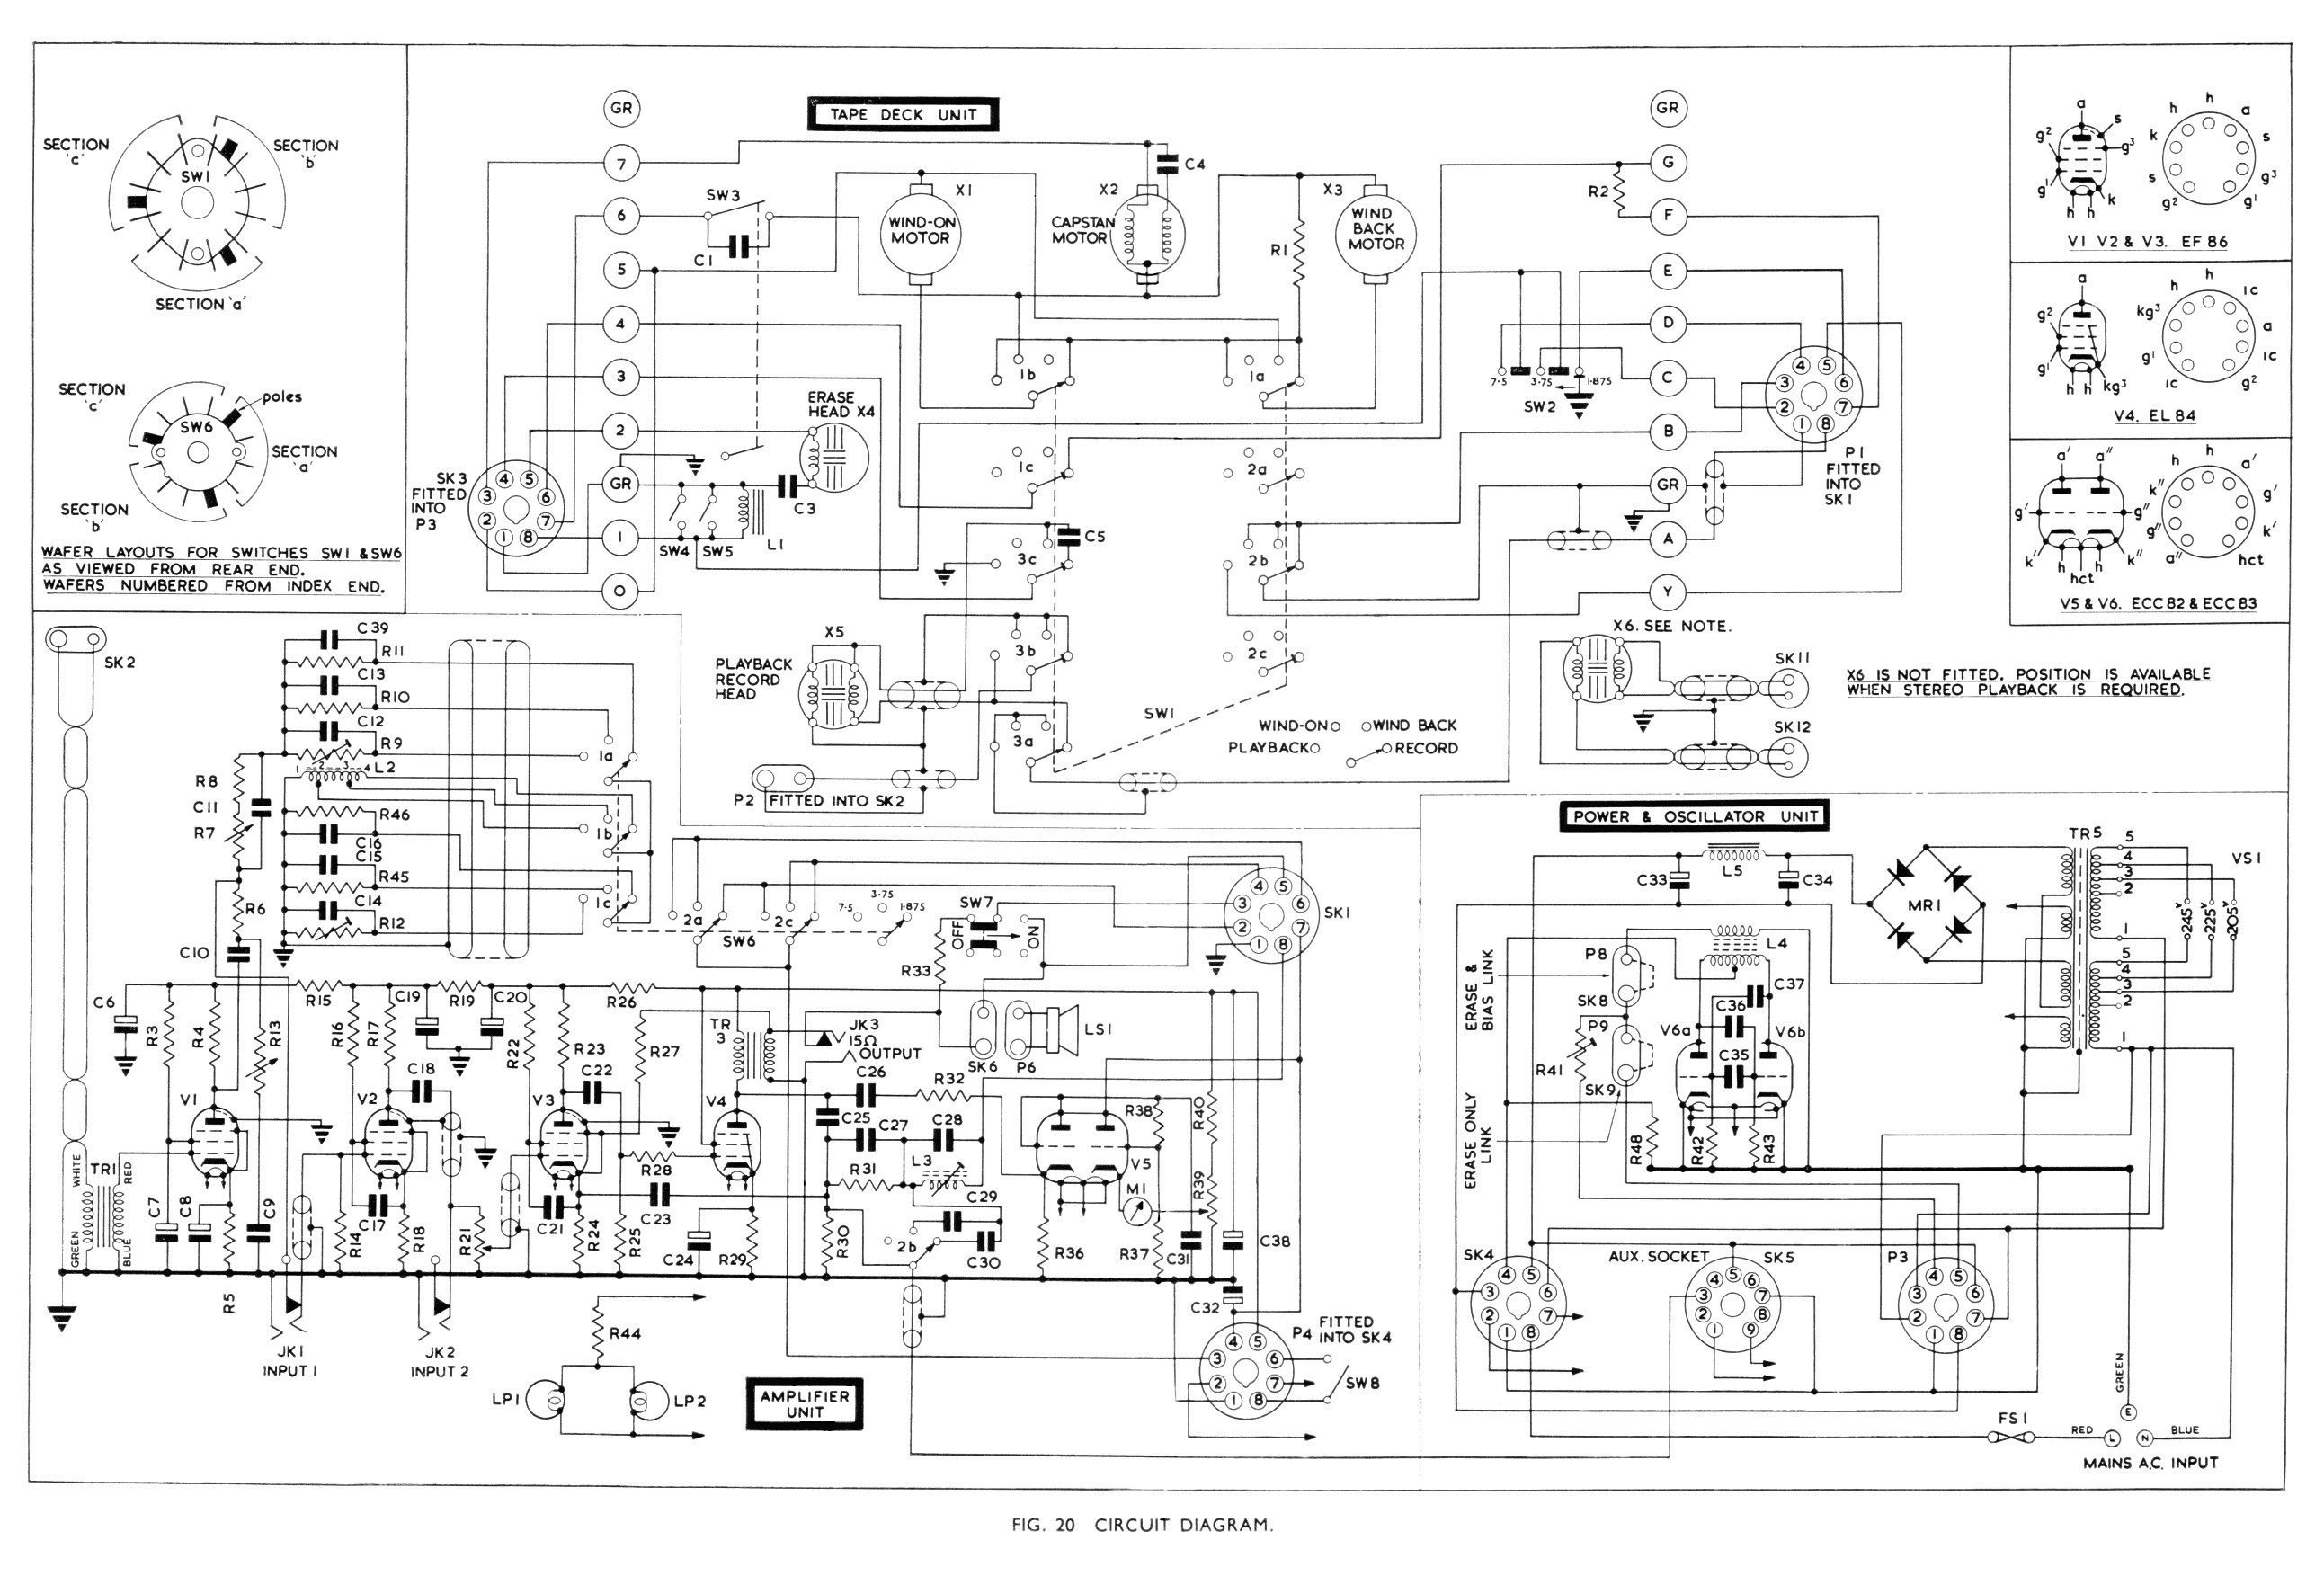 20 Electrical Wiring Diagram Software Design With Images